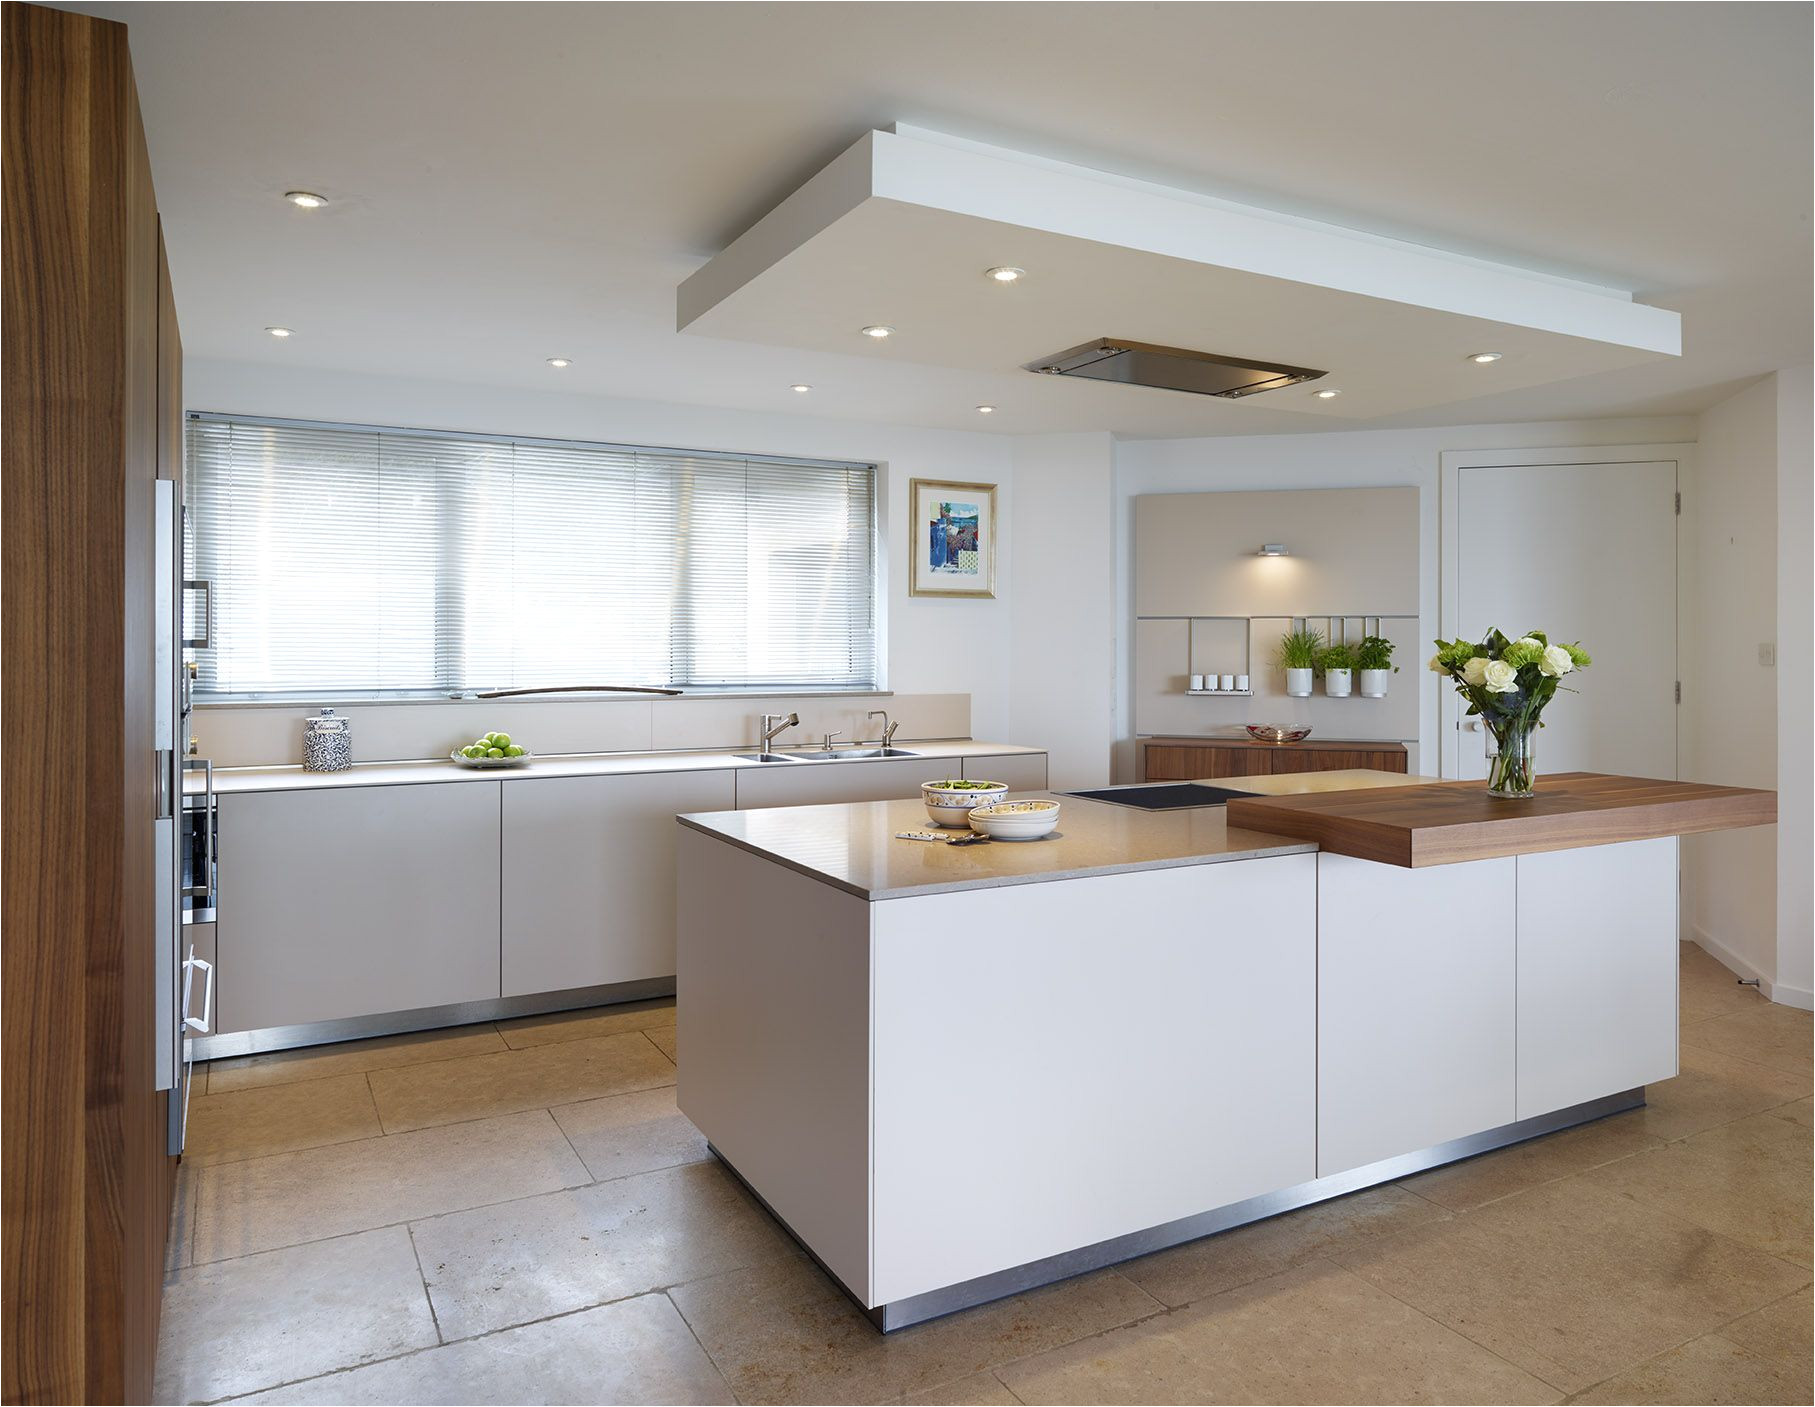 Ceiling-mounted Recessed Kitchen Vents the Drop Ceiling Creates A Flush Fit Extractor Above the Central